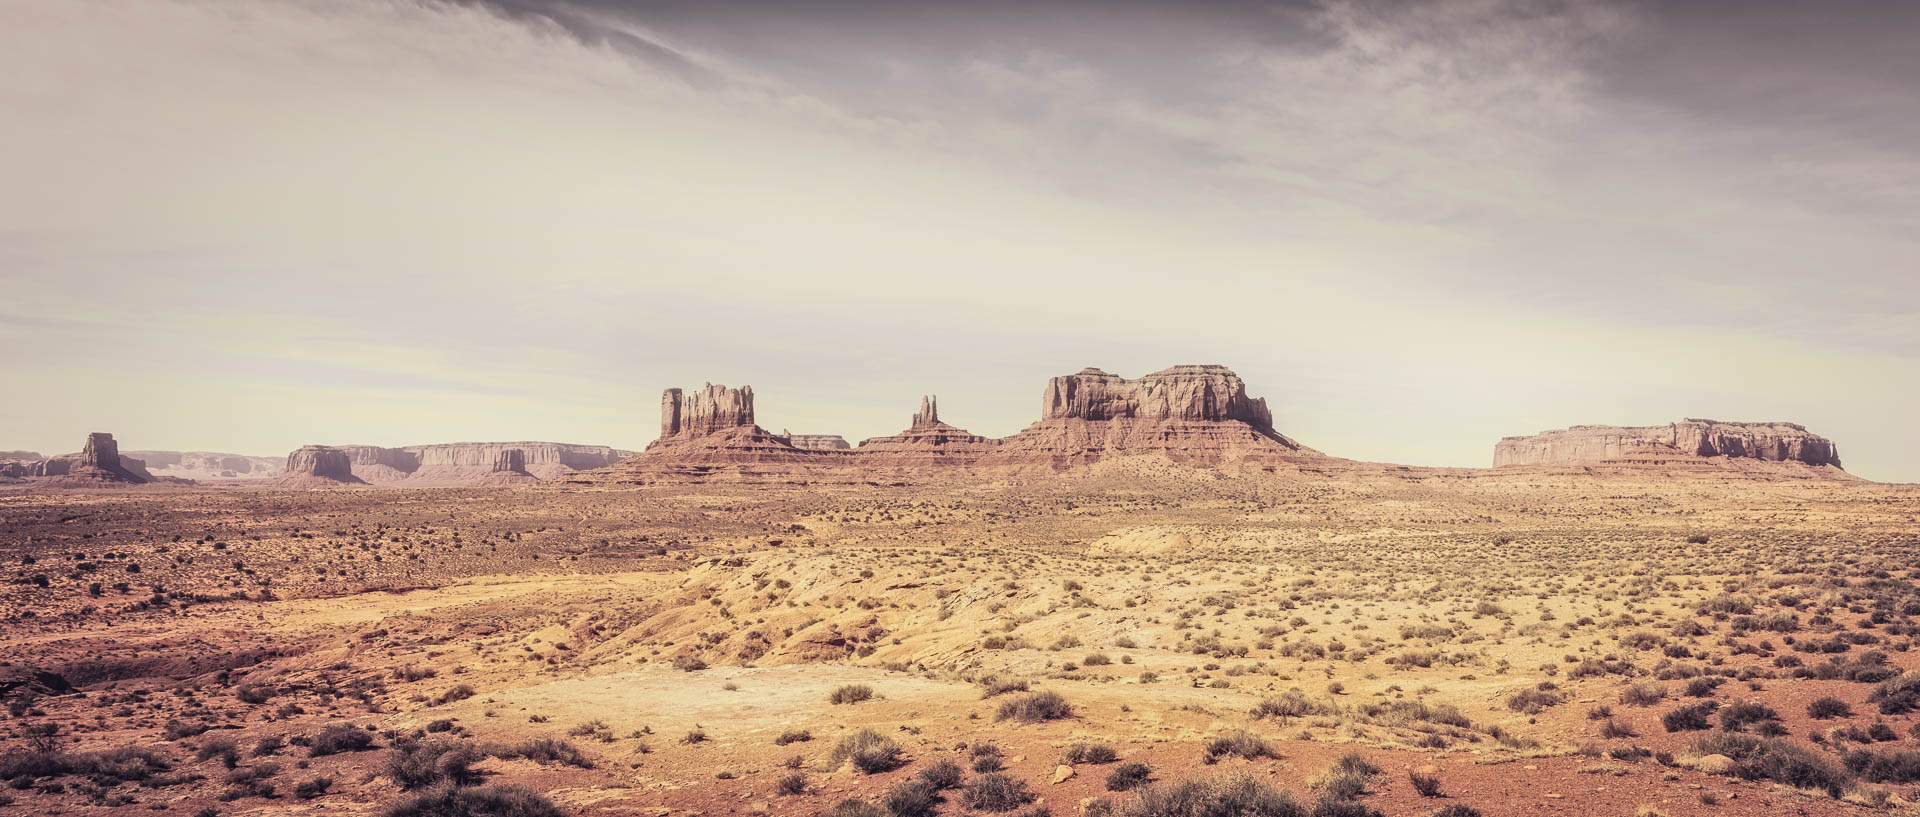 LDKphoto - Monument Valley - 22.jpg